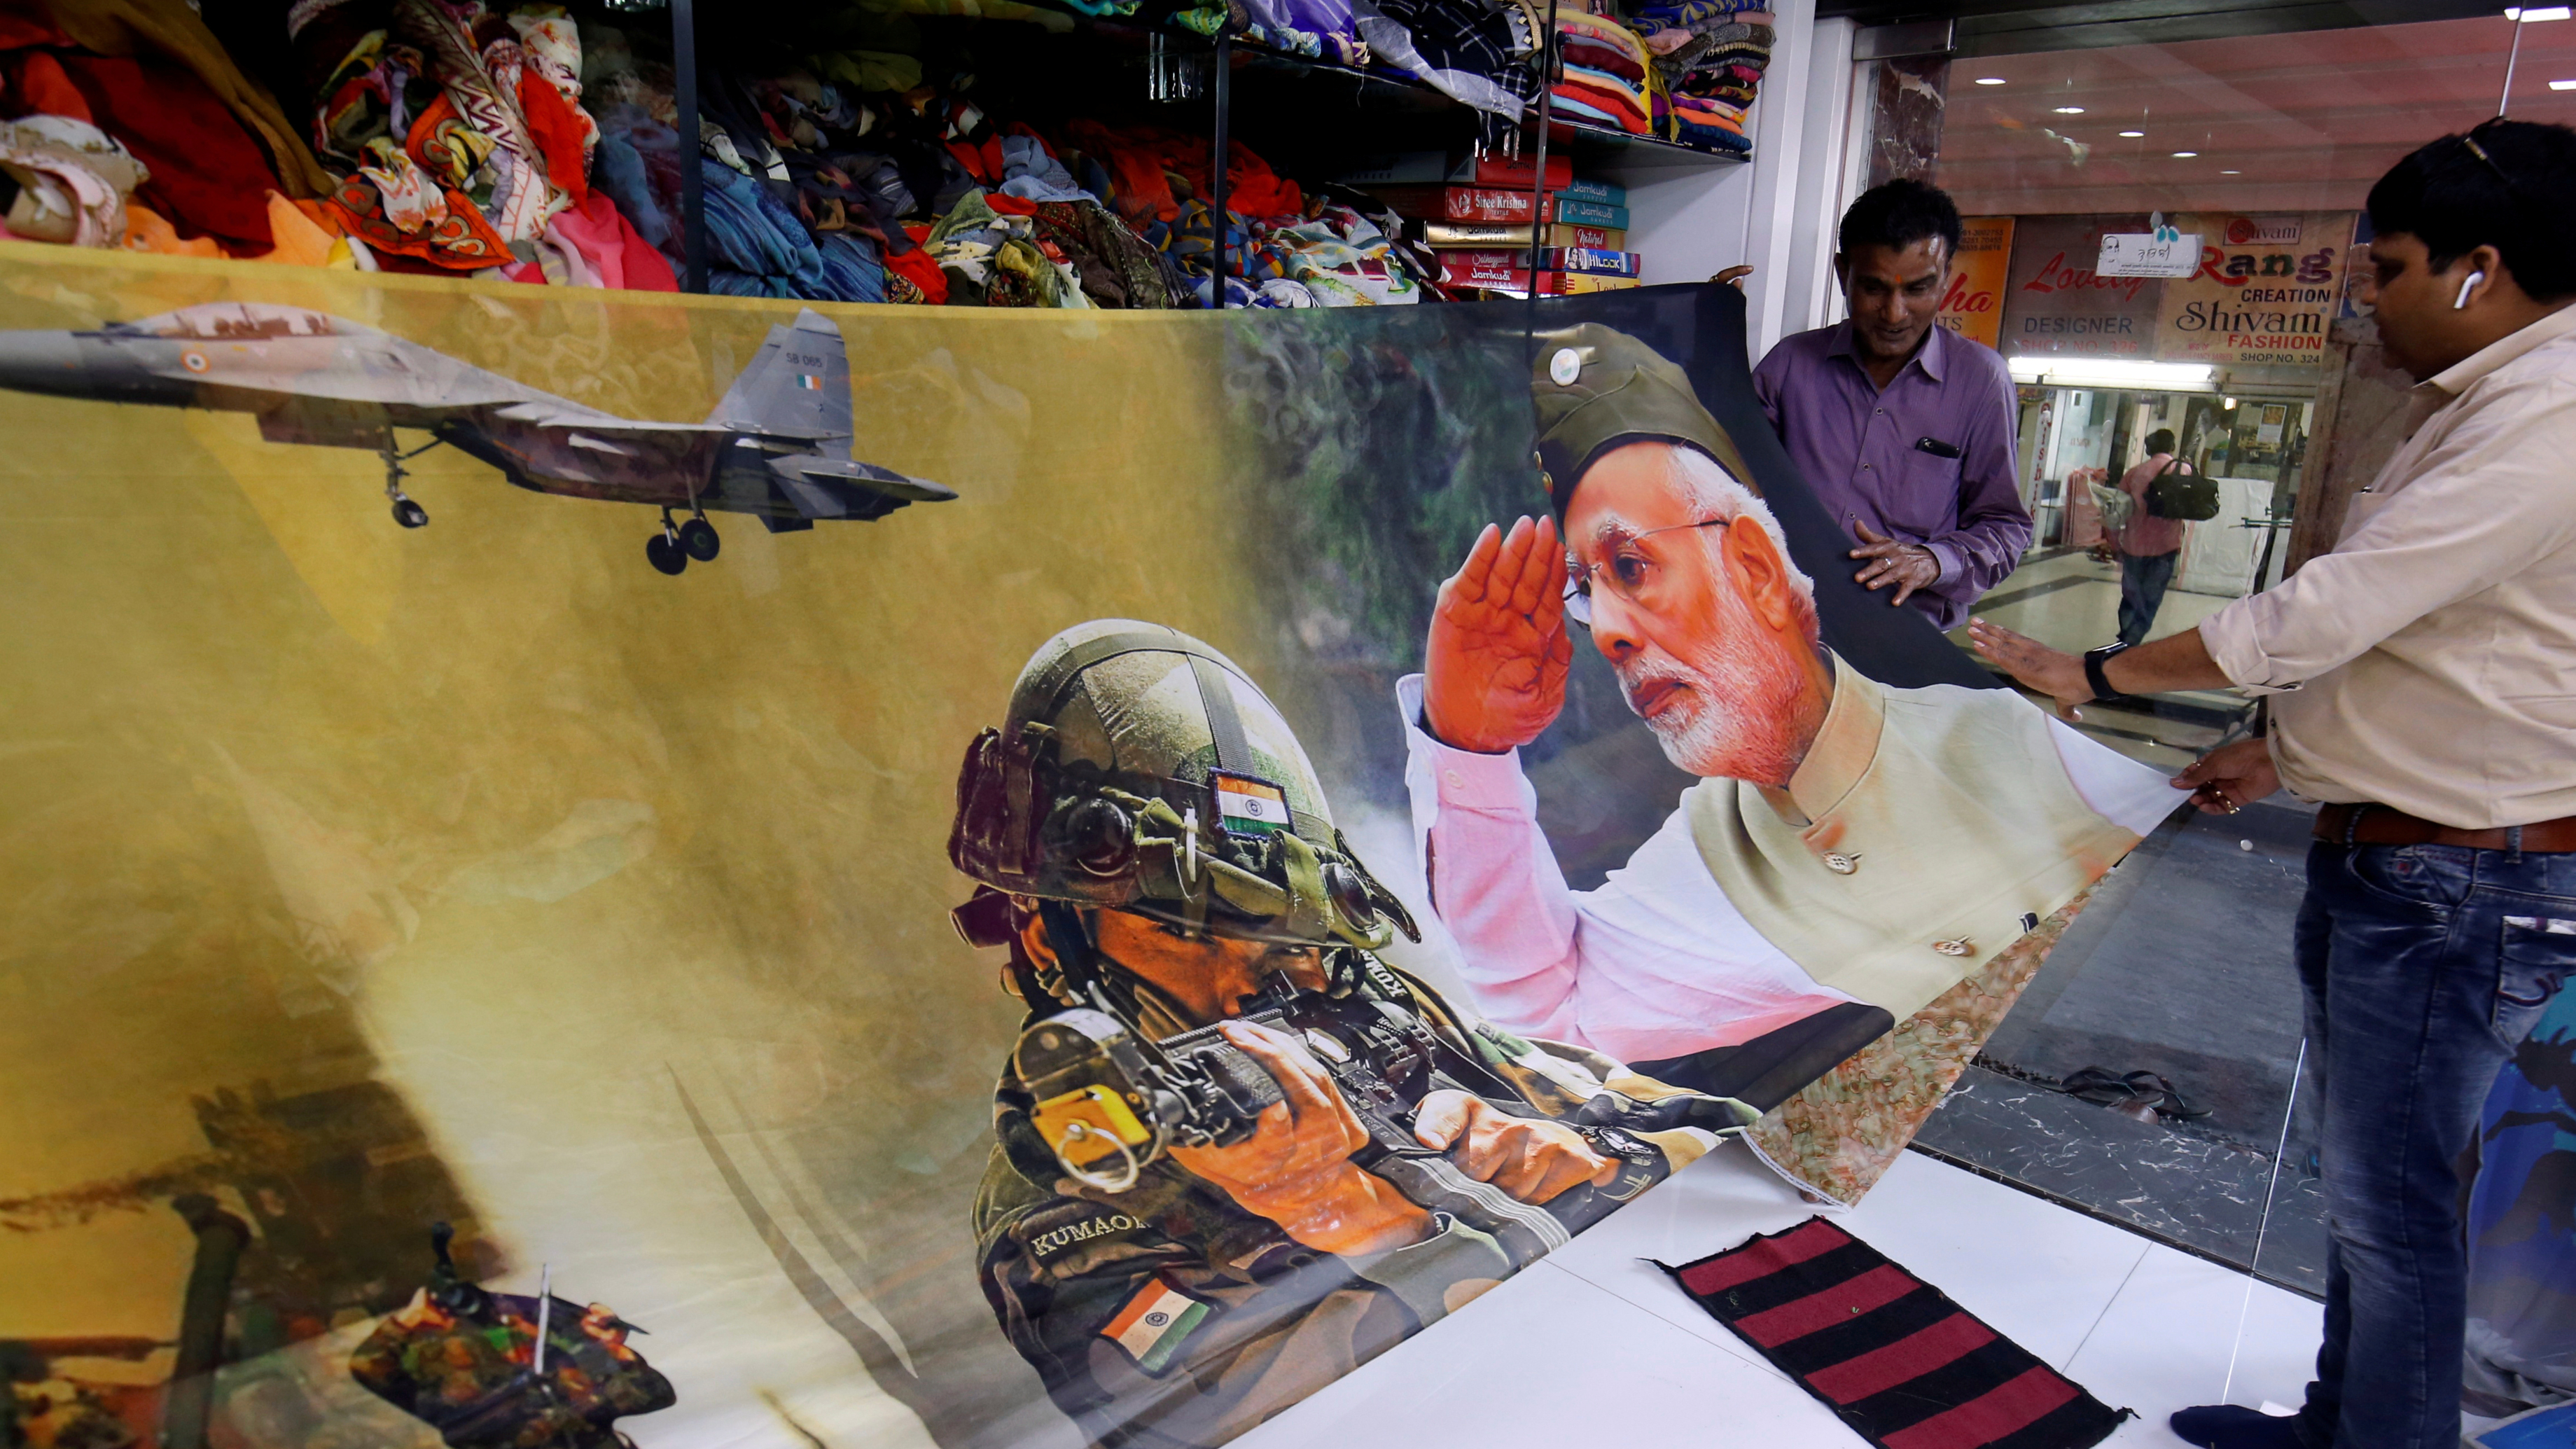 Trader displays sari with image of modi with his military tanks